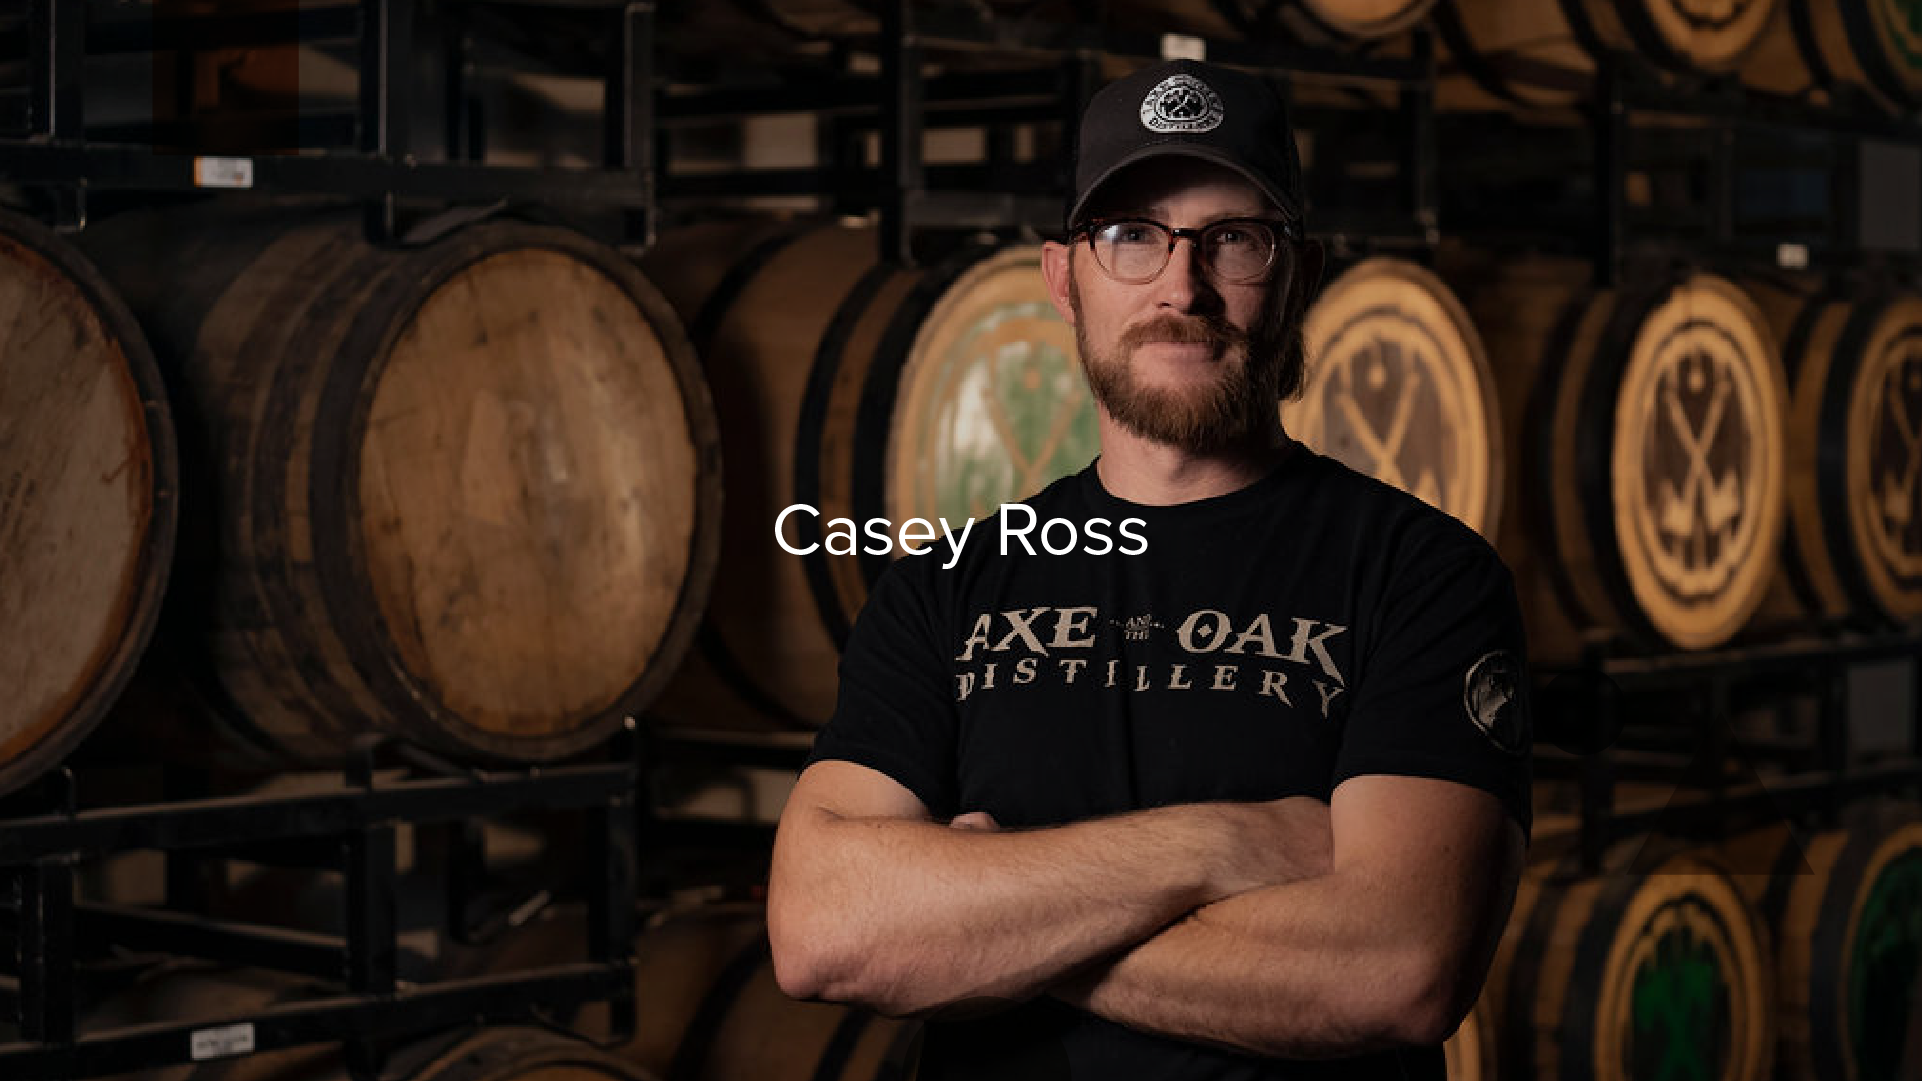 episode-13 - casey ross - axe and the oak